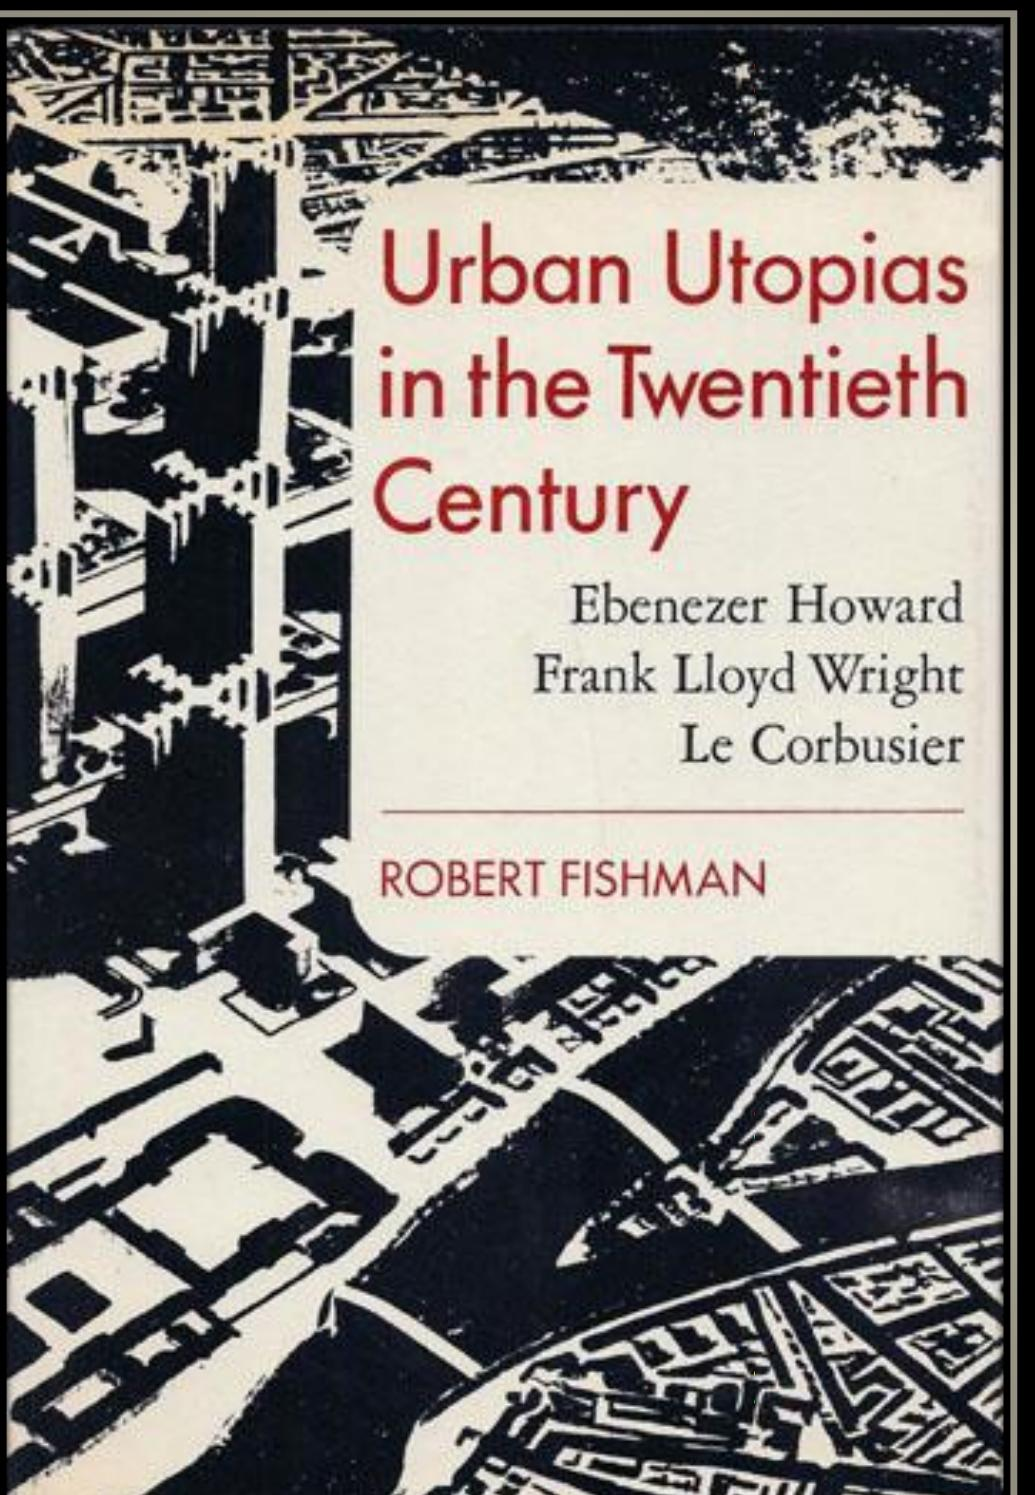 Afbeeldingsresultaat voor urban utopias in the twentieth century fishman